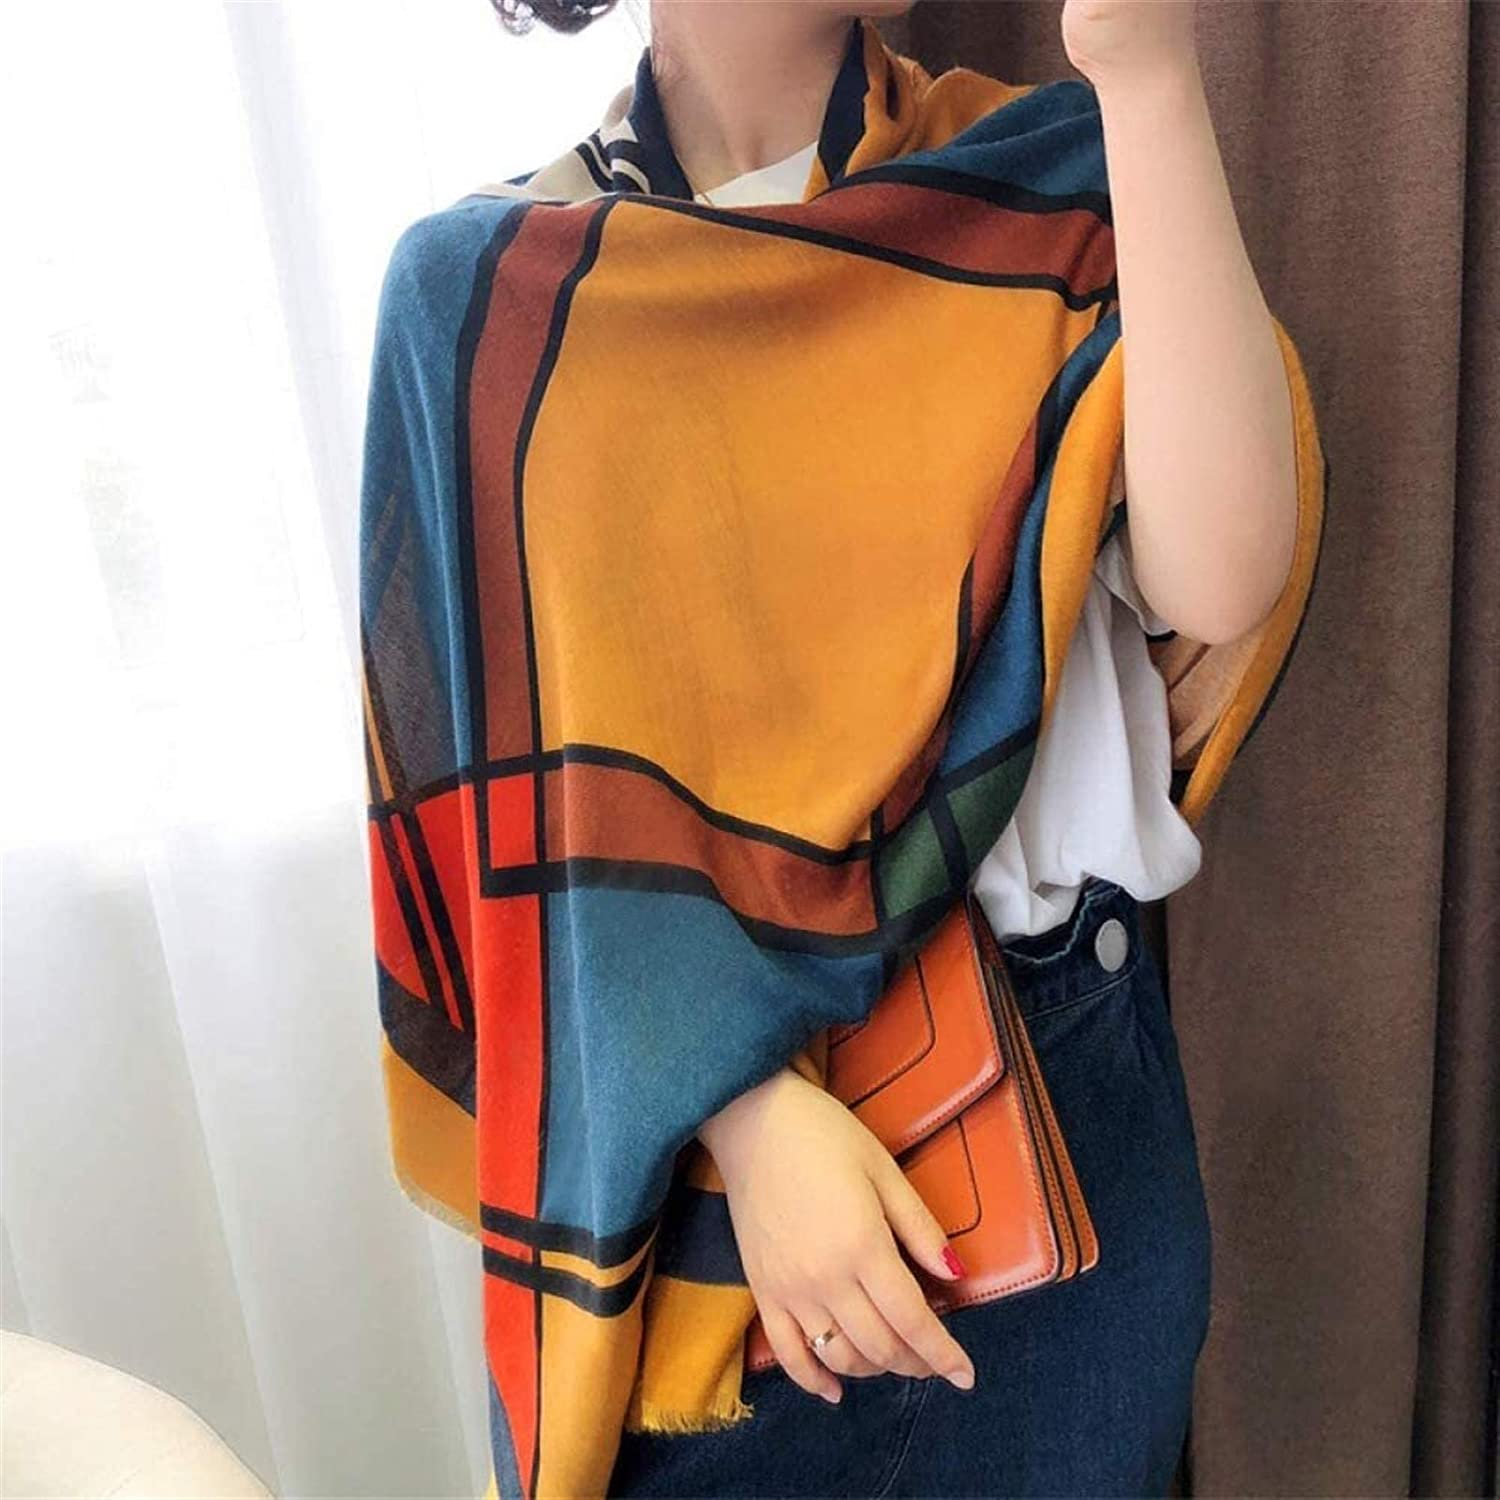 RSBCSHI Scarf Lady, Warm Big Cotton and Linen Shawl Cloak Wrap, for Autumn and Winter Christmas (Color : A)